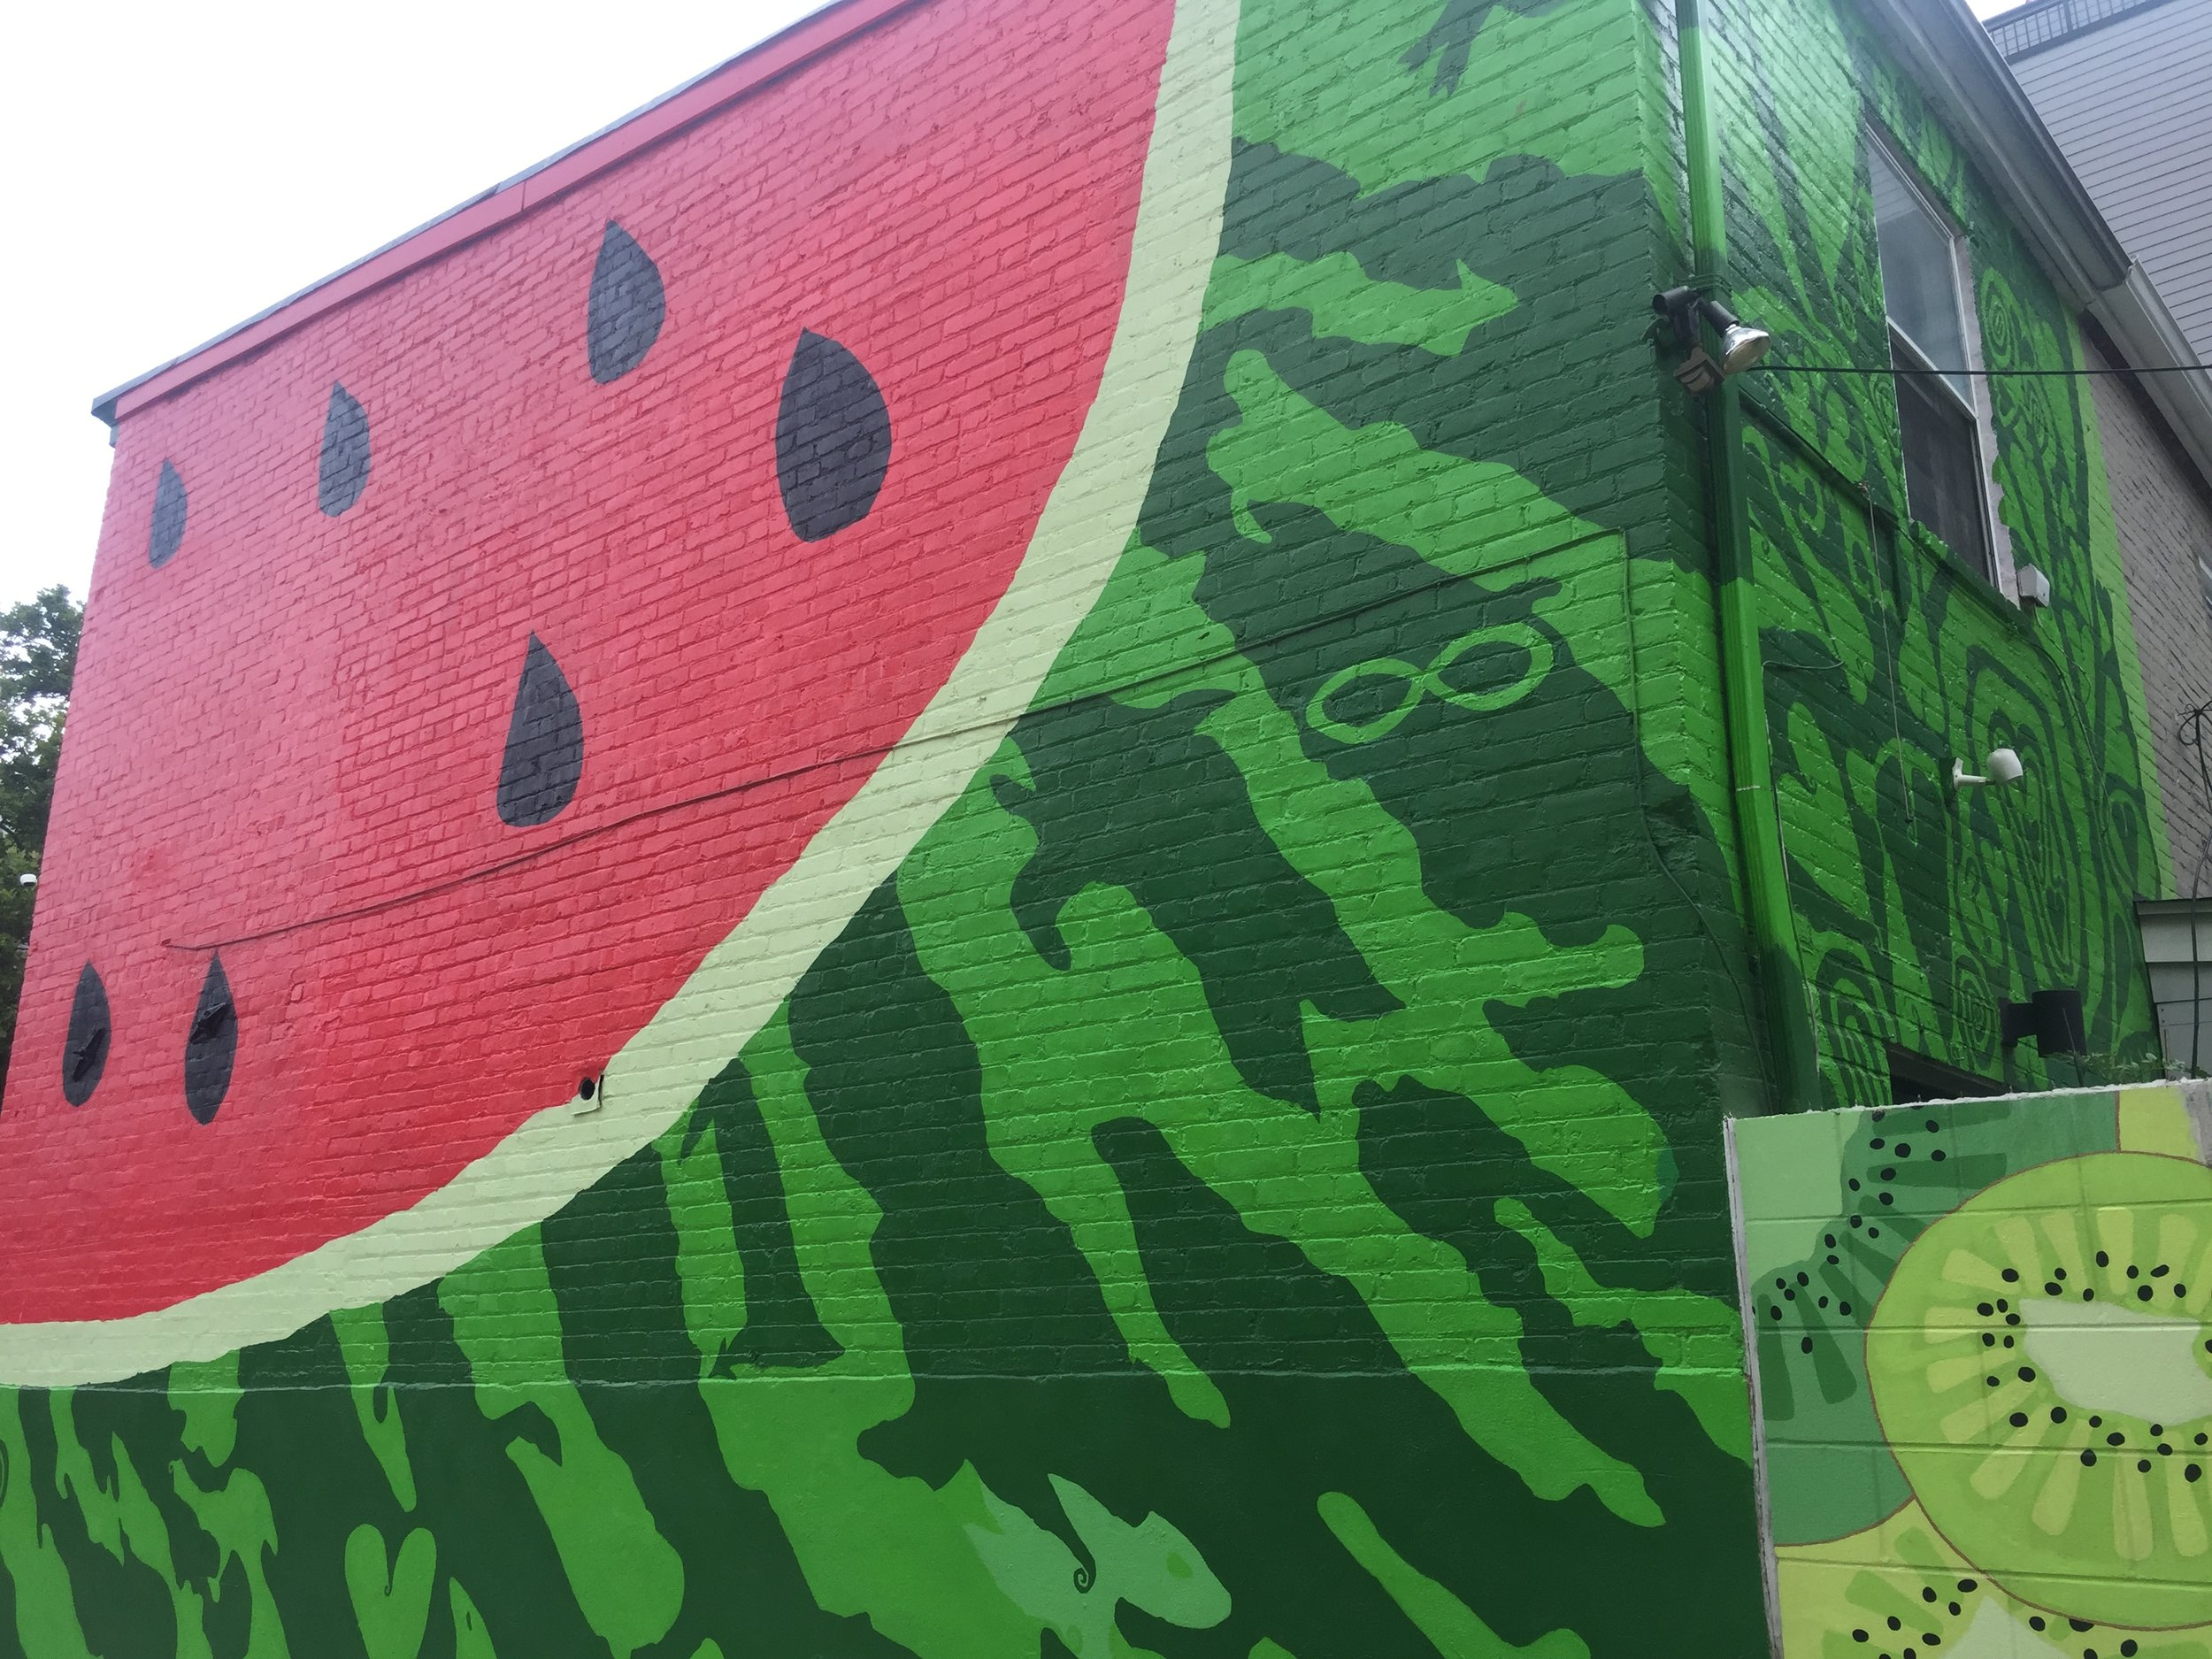 The Watermelon House, Washington D.C. | D.C. Best Instagram-Worthy Murals